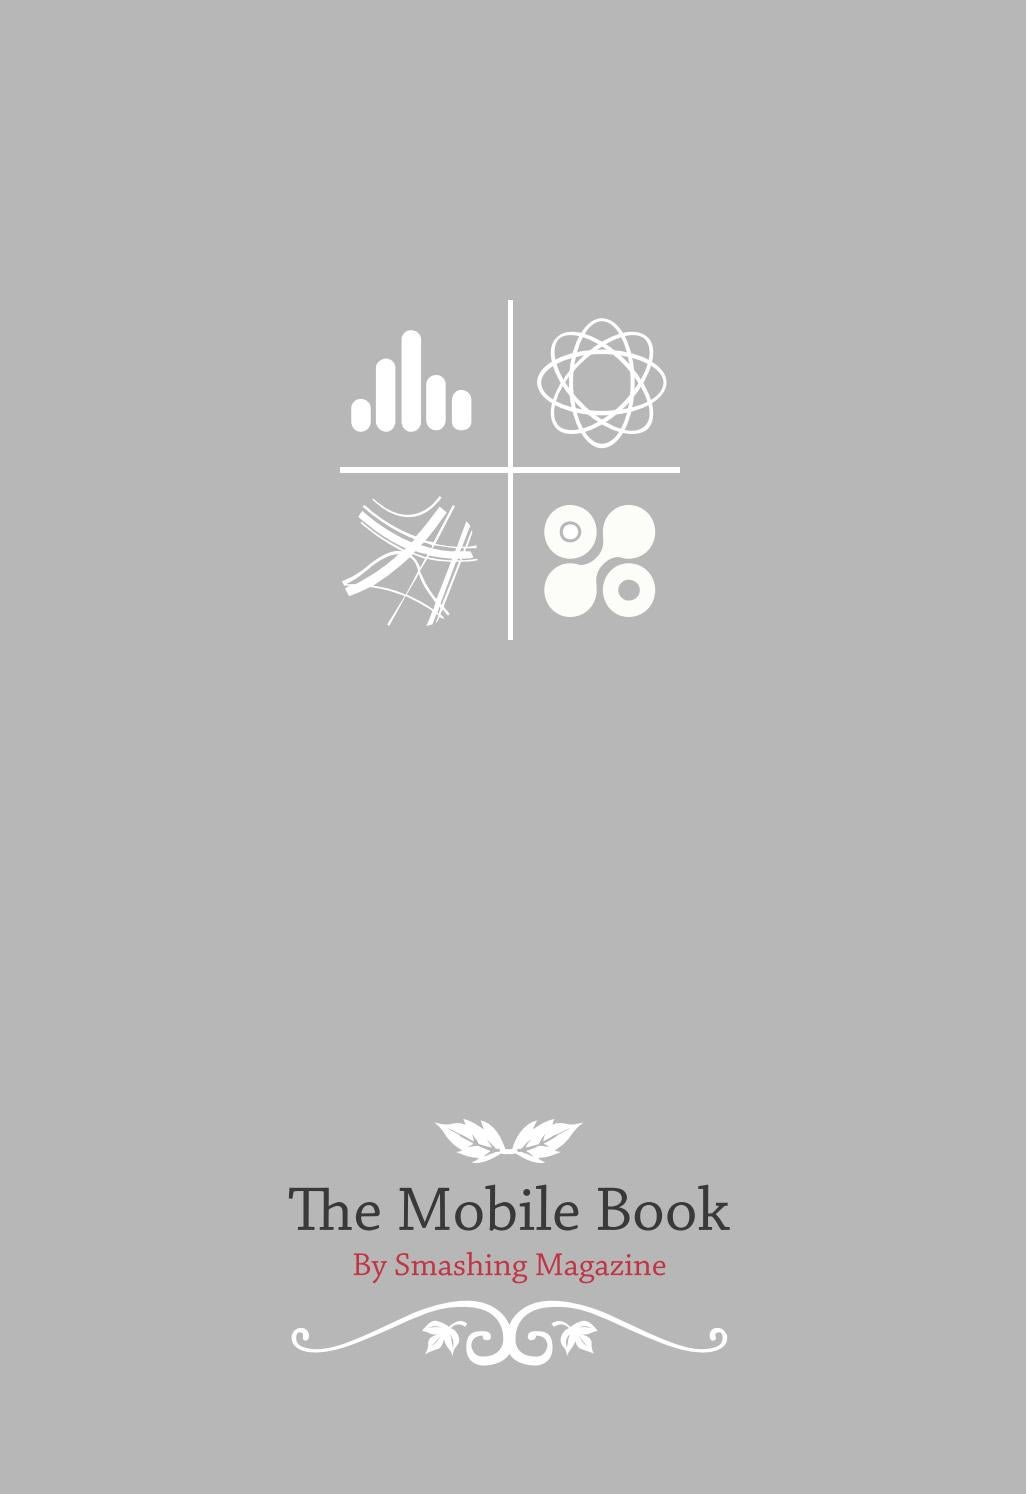 Smashing ebooks the mobile book by Byron Sin - issuu